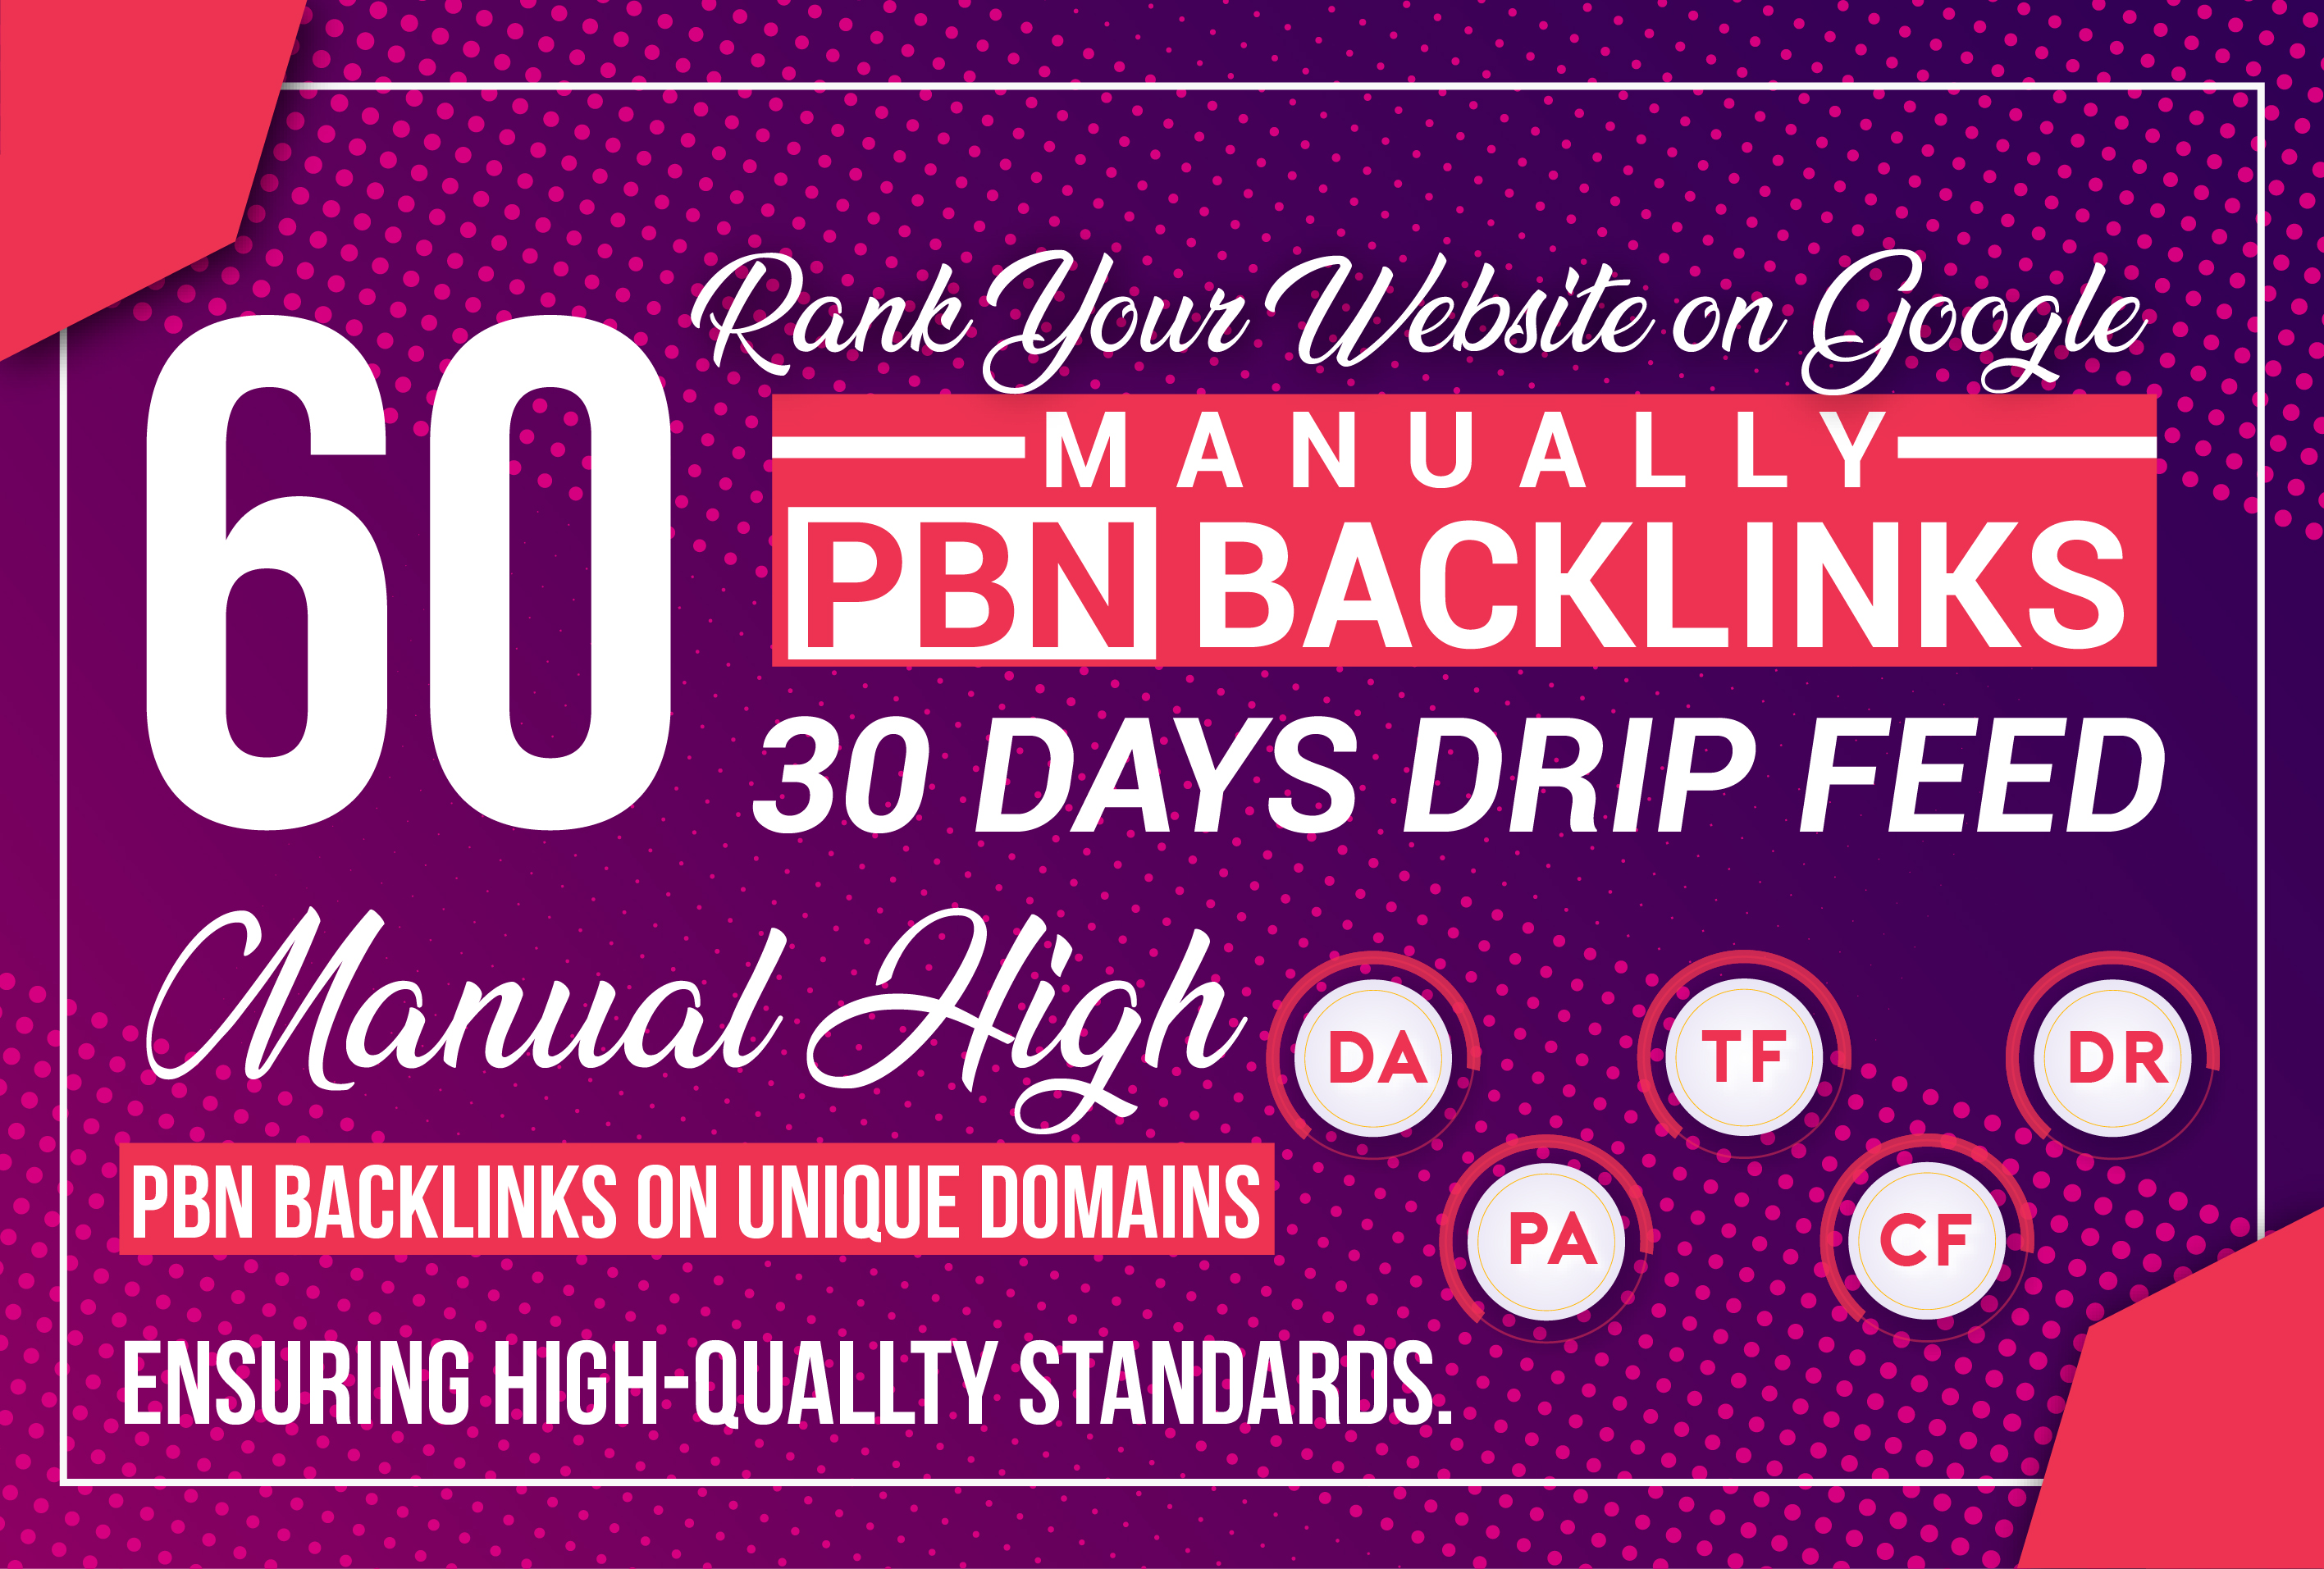 Rank Your Website on Google with 30 Days Drip Feed 60 PBN Backlinks Manually